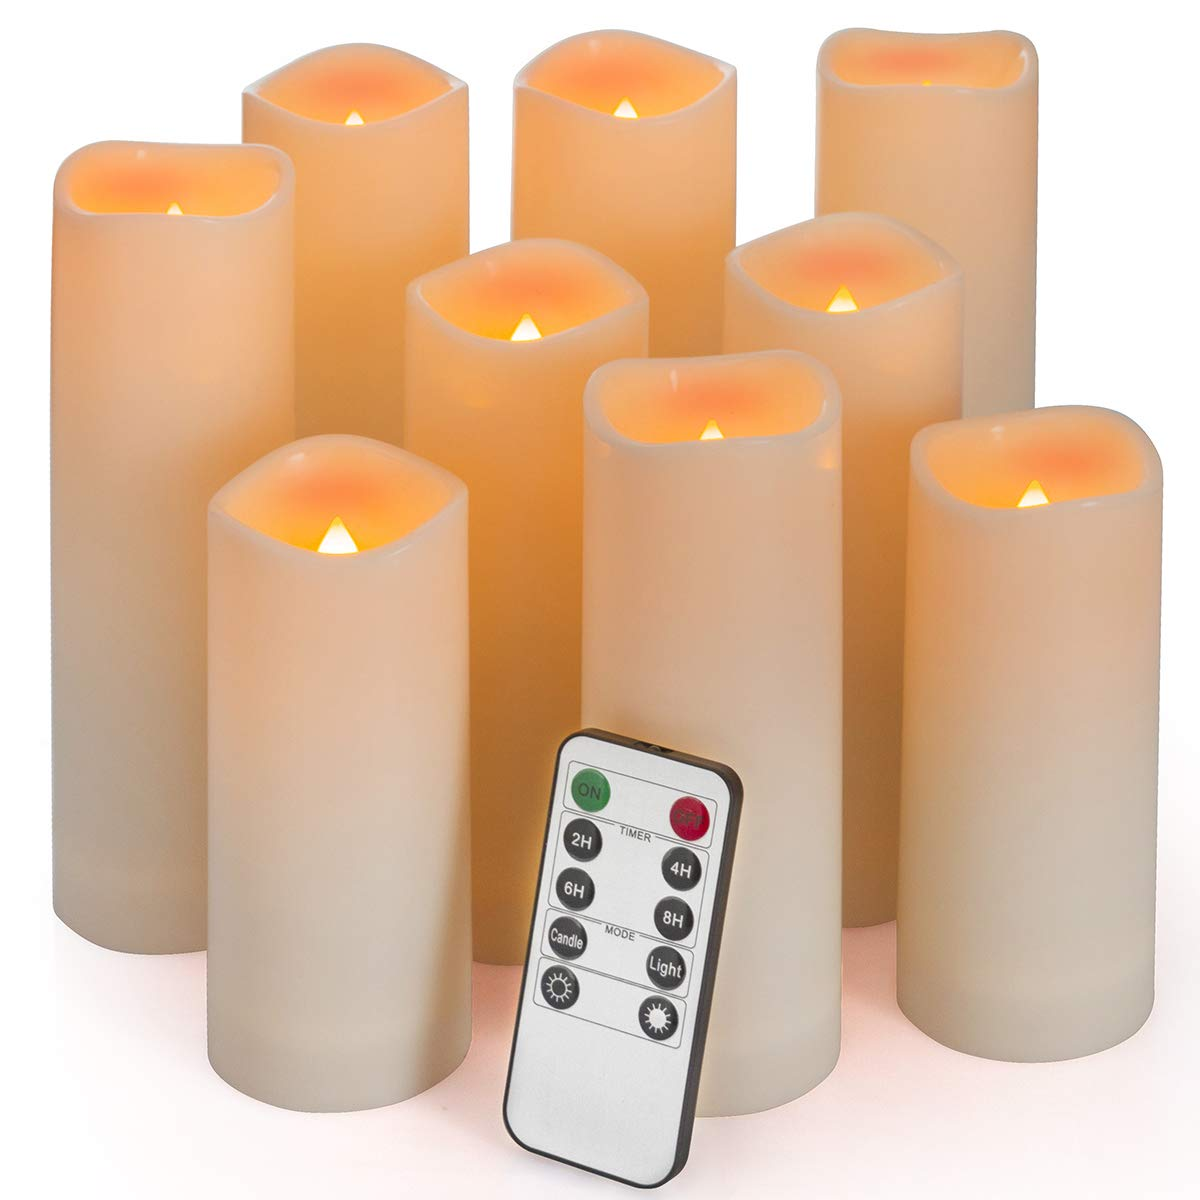 Flameless Candles, Waterproof Outdoor Candles set of 9 ( D 2.2'' X H 5''5''6''6''6''7''7''7''7'' ) LED Candles Battery Operated Candles with Remote Timer, Ivory White by Enido (Image #2)